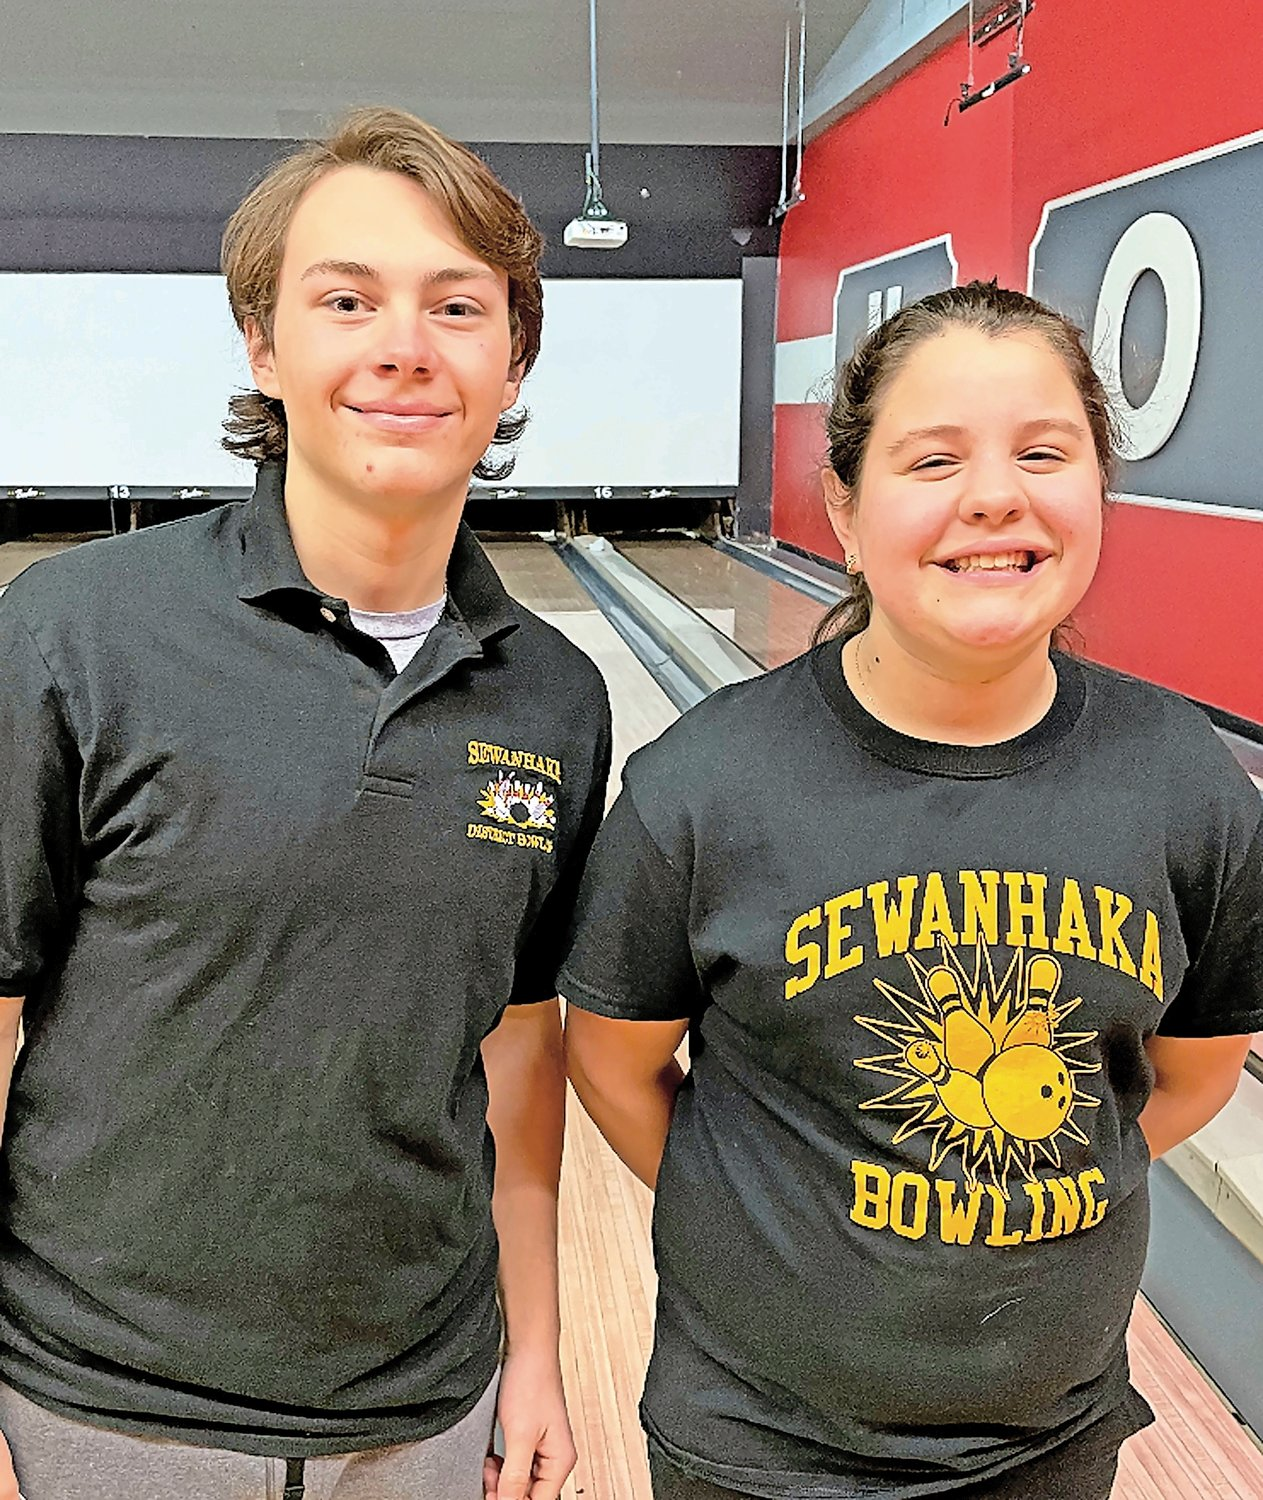 Brandon Hughes, averaging 227, and Moran Winchell, sporting a 193 average, are leading Sewanhaka's bowling programs.